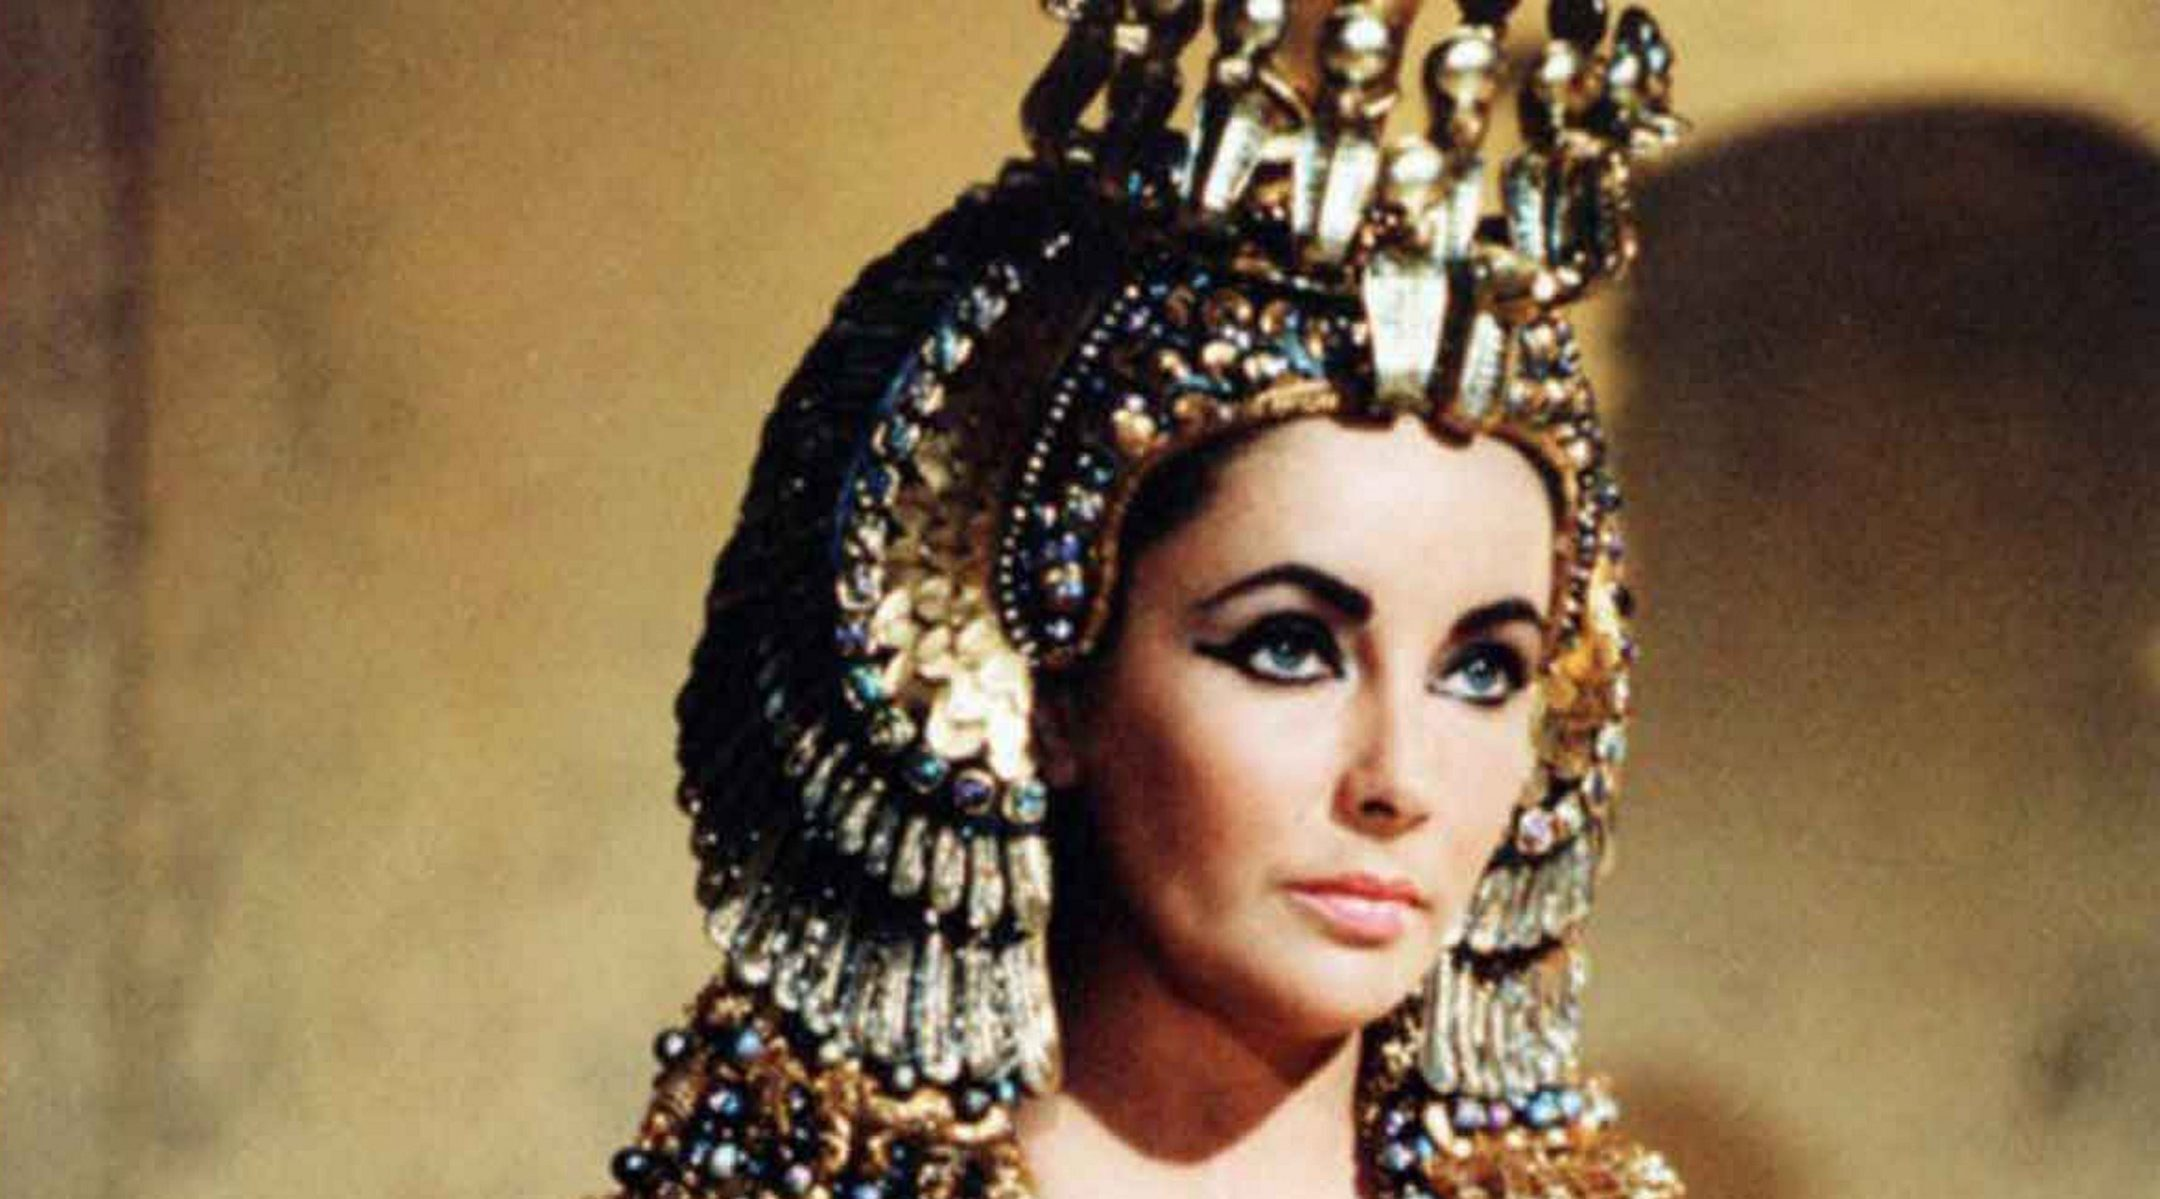 Elizabeth Taylor as Cleopatra in the 1963 film on the Egyptian queen. (Photo/JTA-Universal History Archive-Universal Images Group via Getty Images)